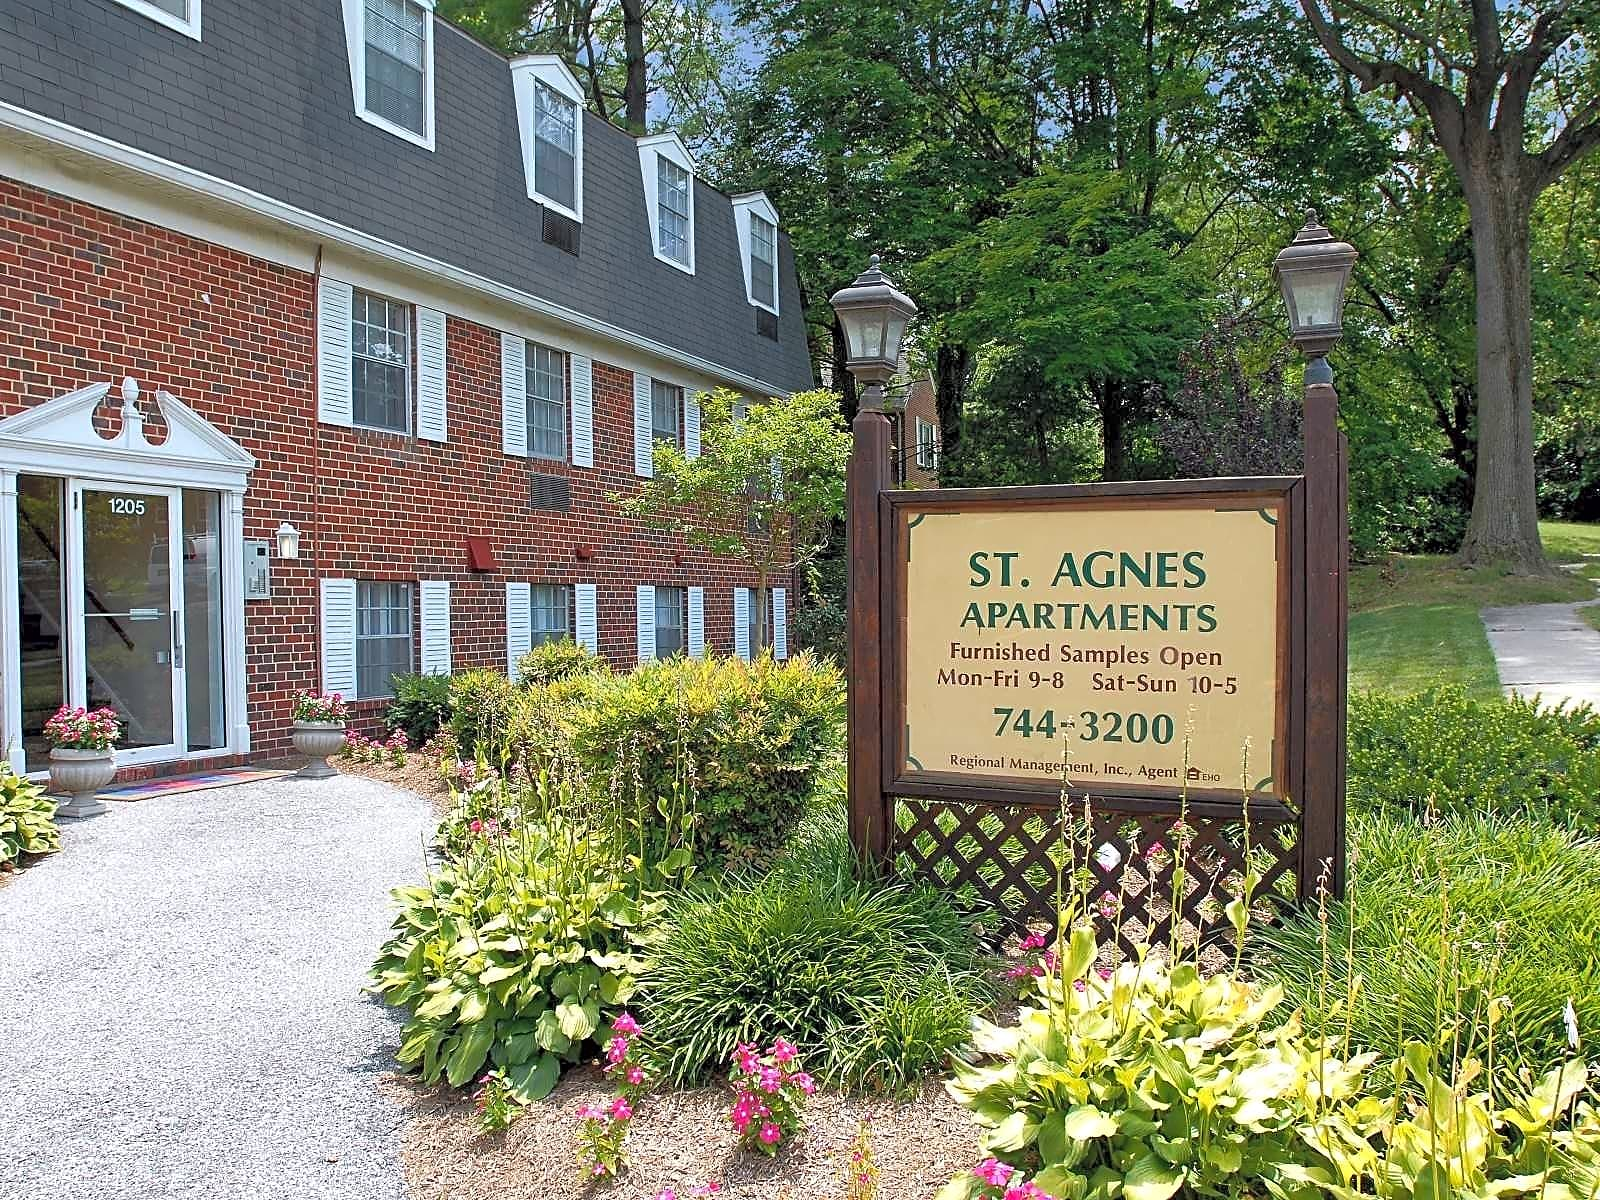 saint agnes apartments woodlawn md 21207